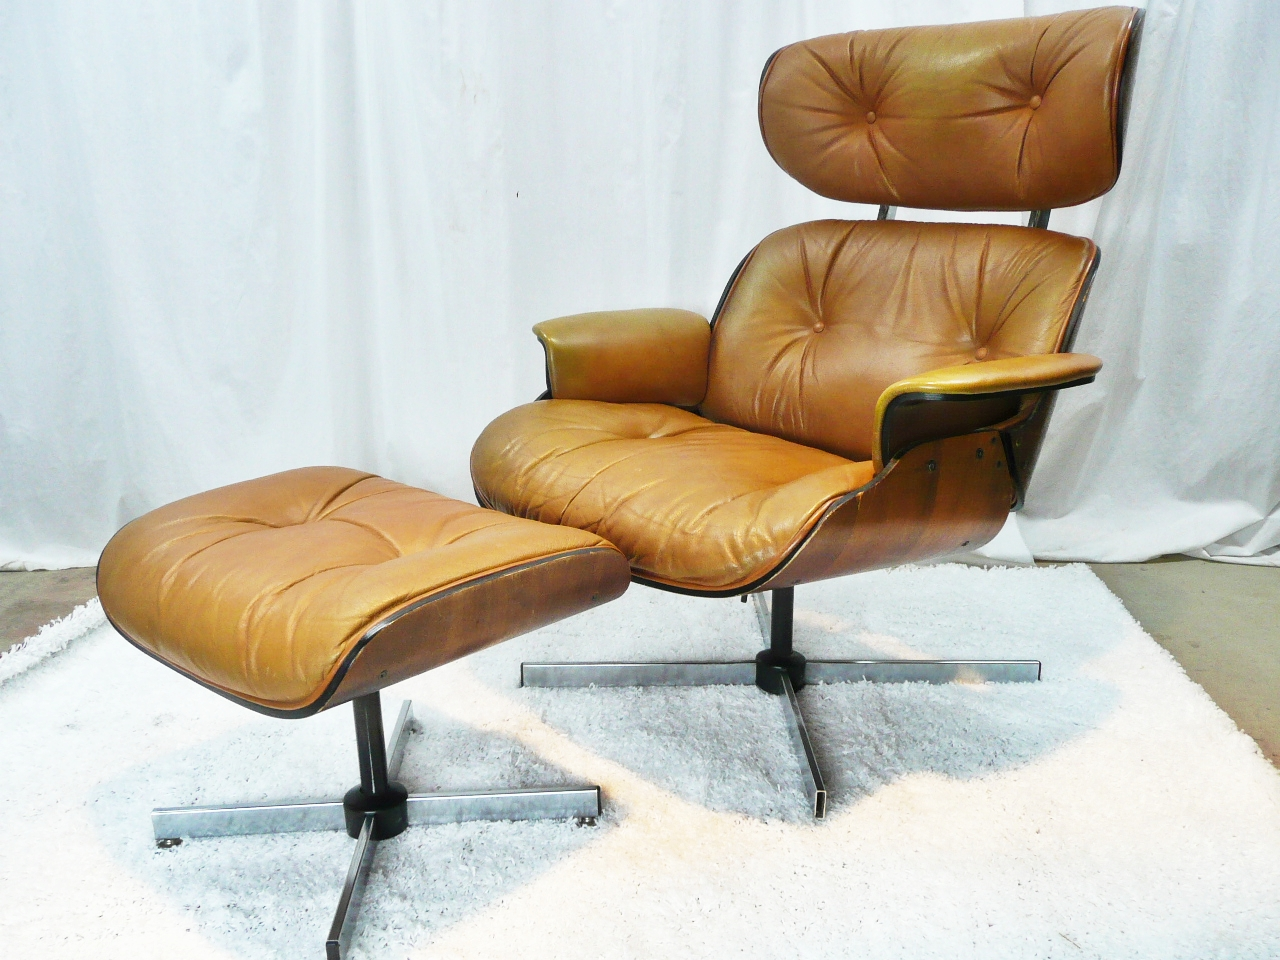 Modern mid century danish vintage furniture shop used restoration